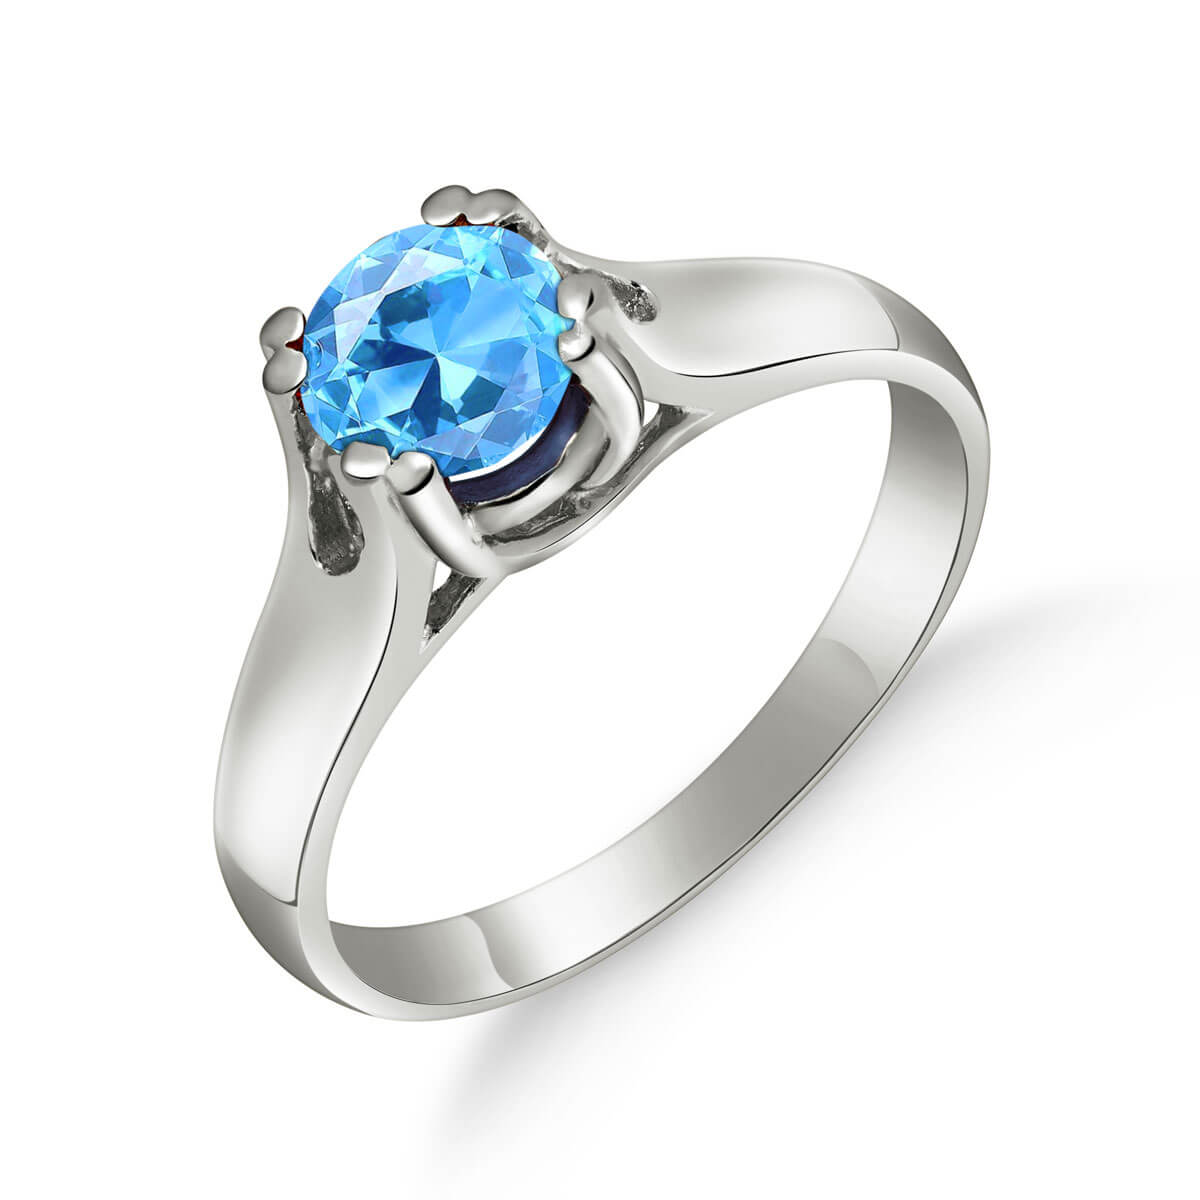 Blue Topaz Solitaire Ring 1.1 ct in 18ct White Gold